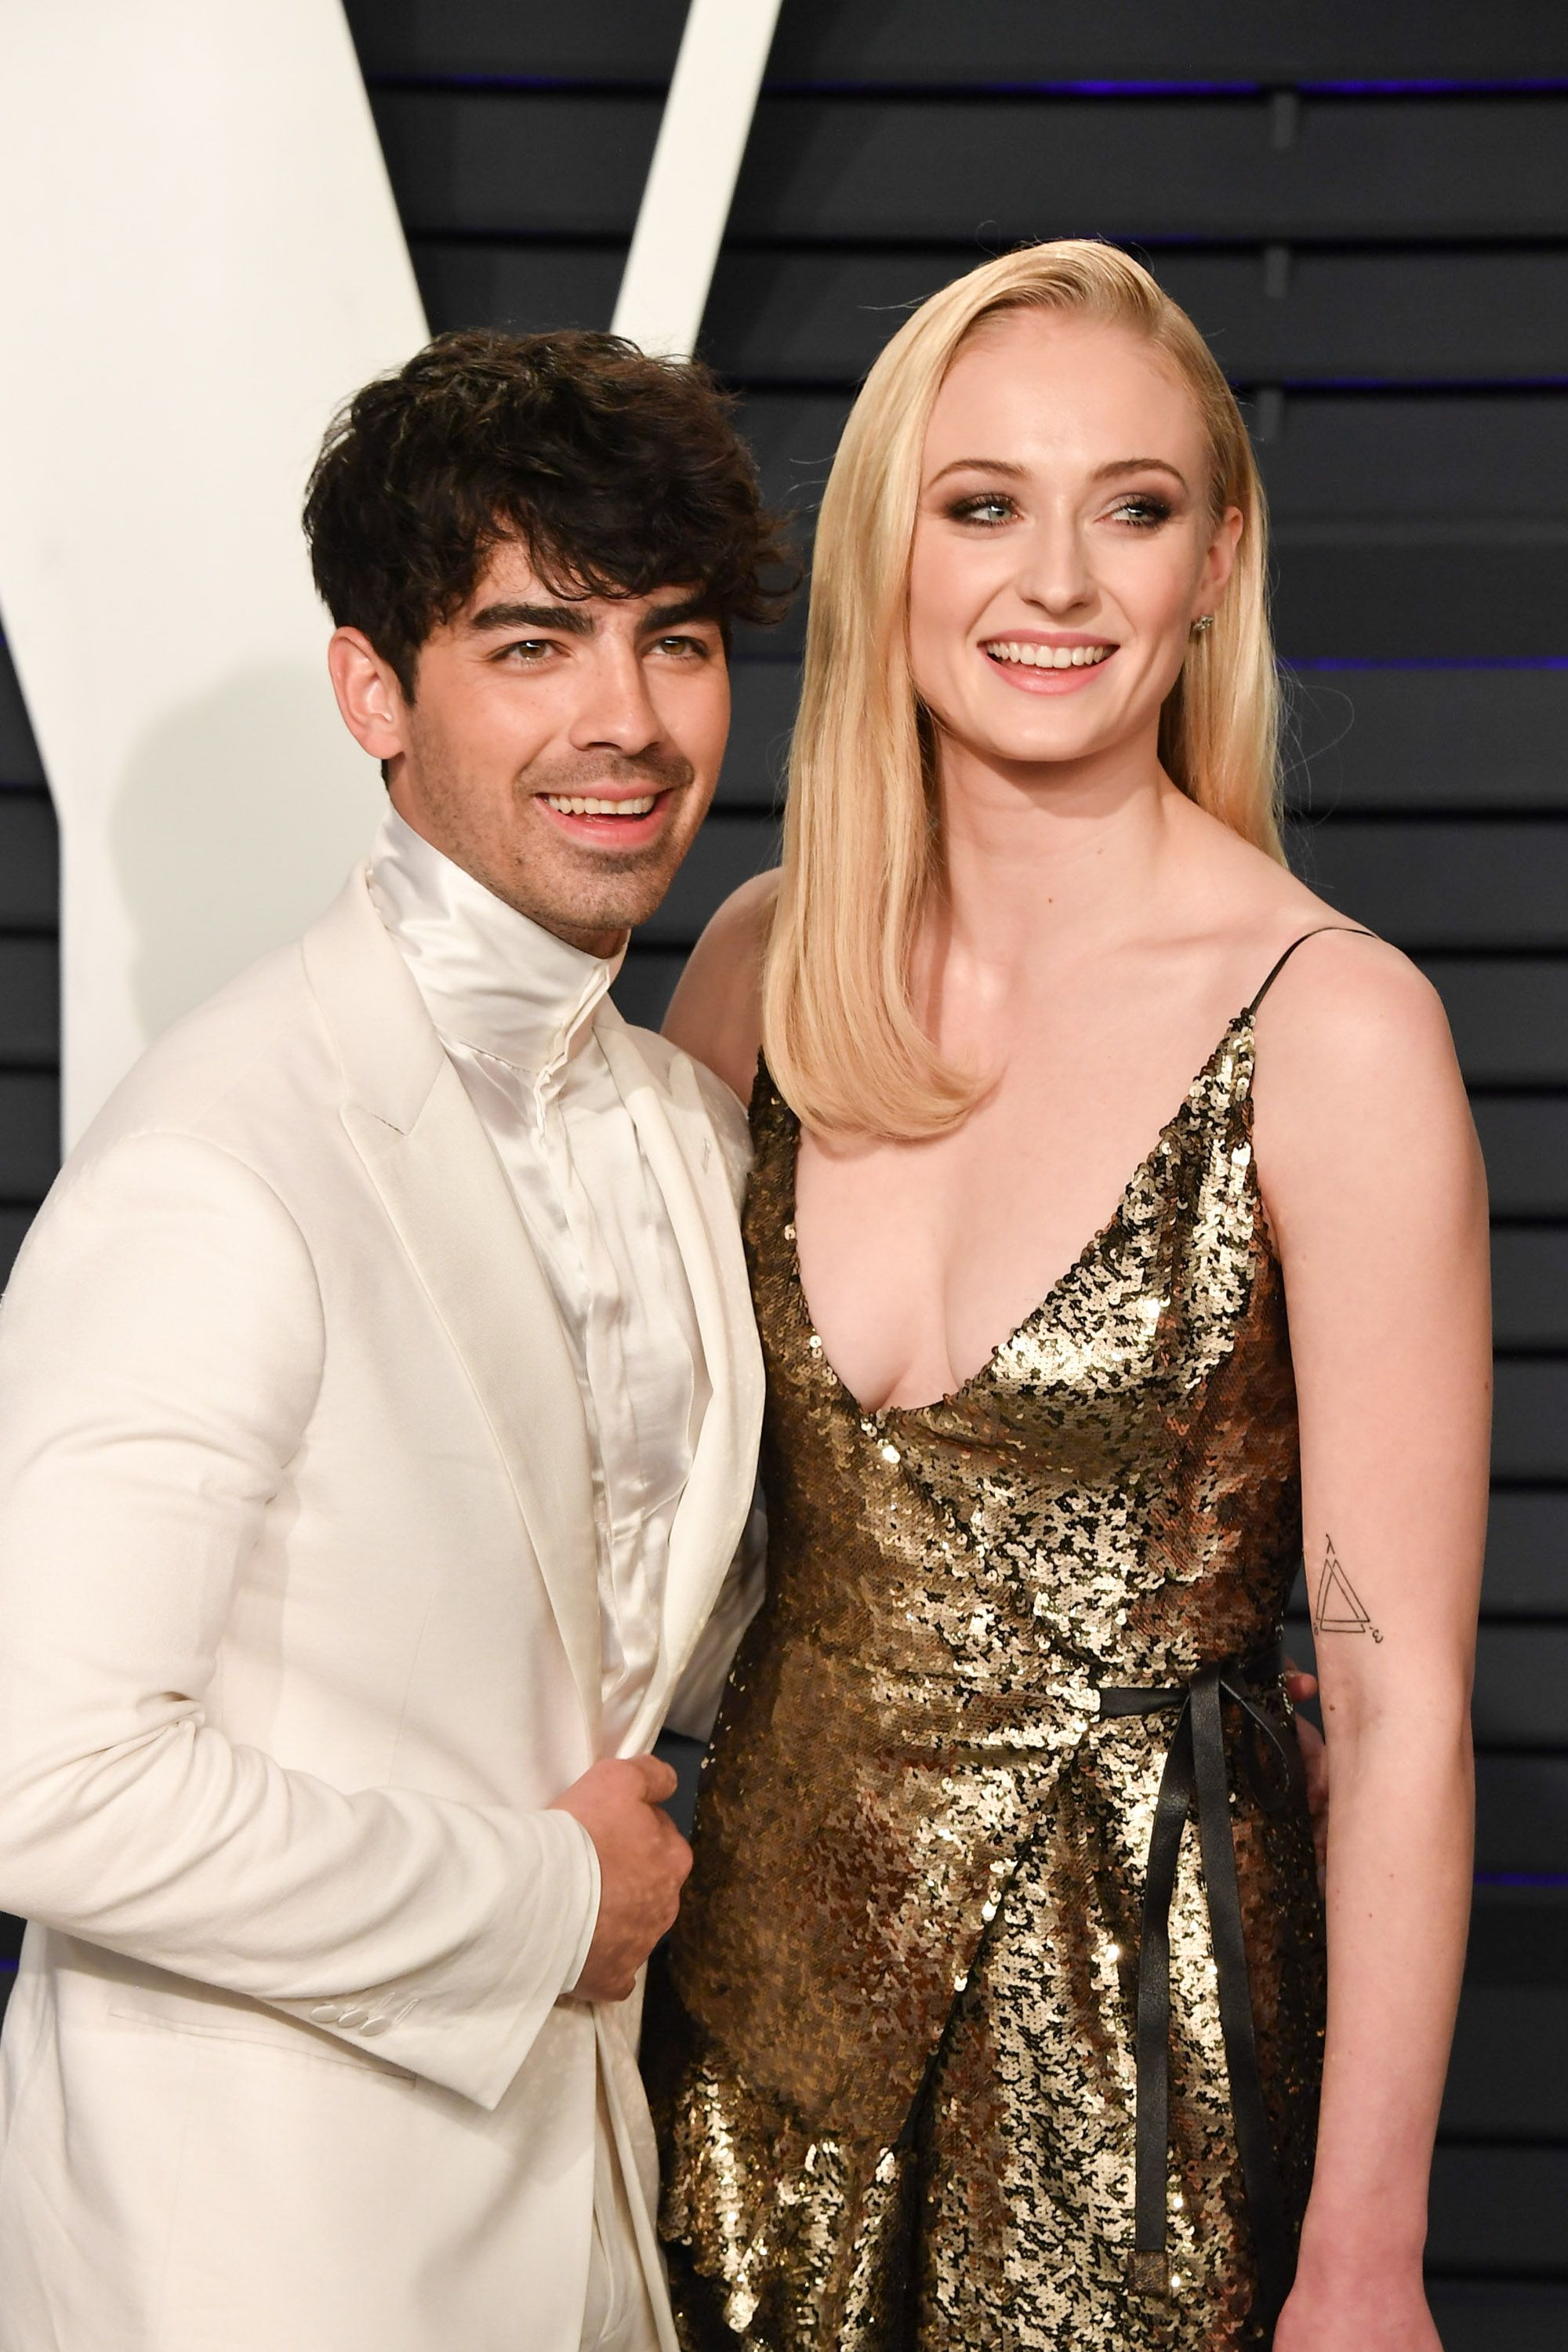 Image result for Joe Jonas and Sophie Turner wedding pics